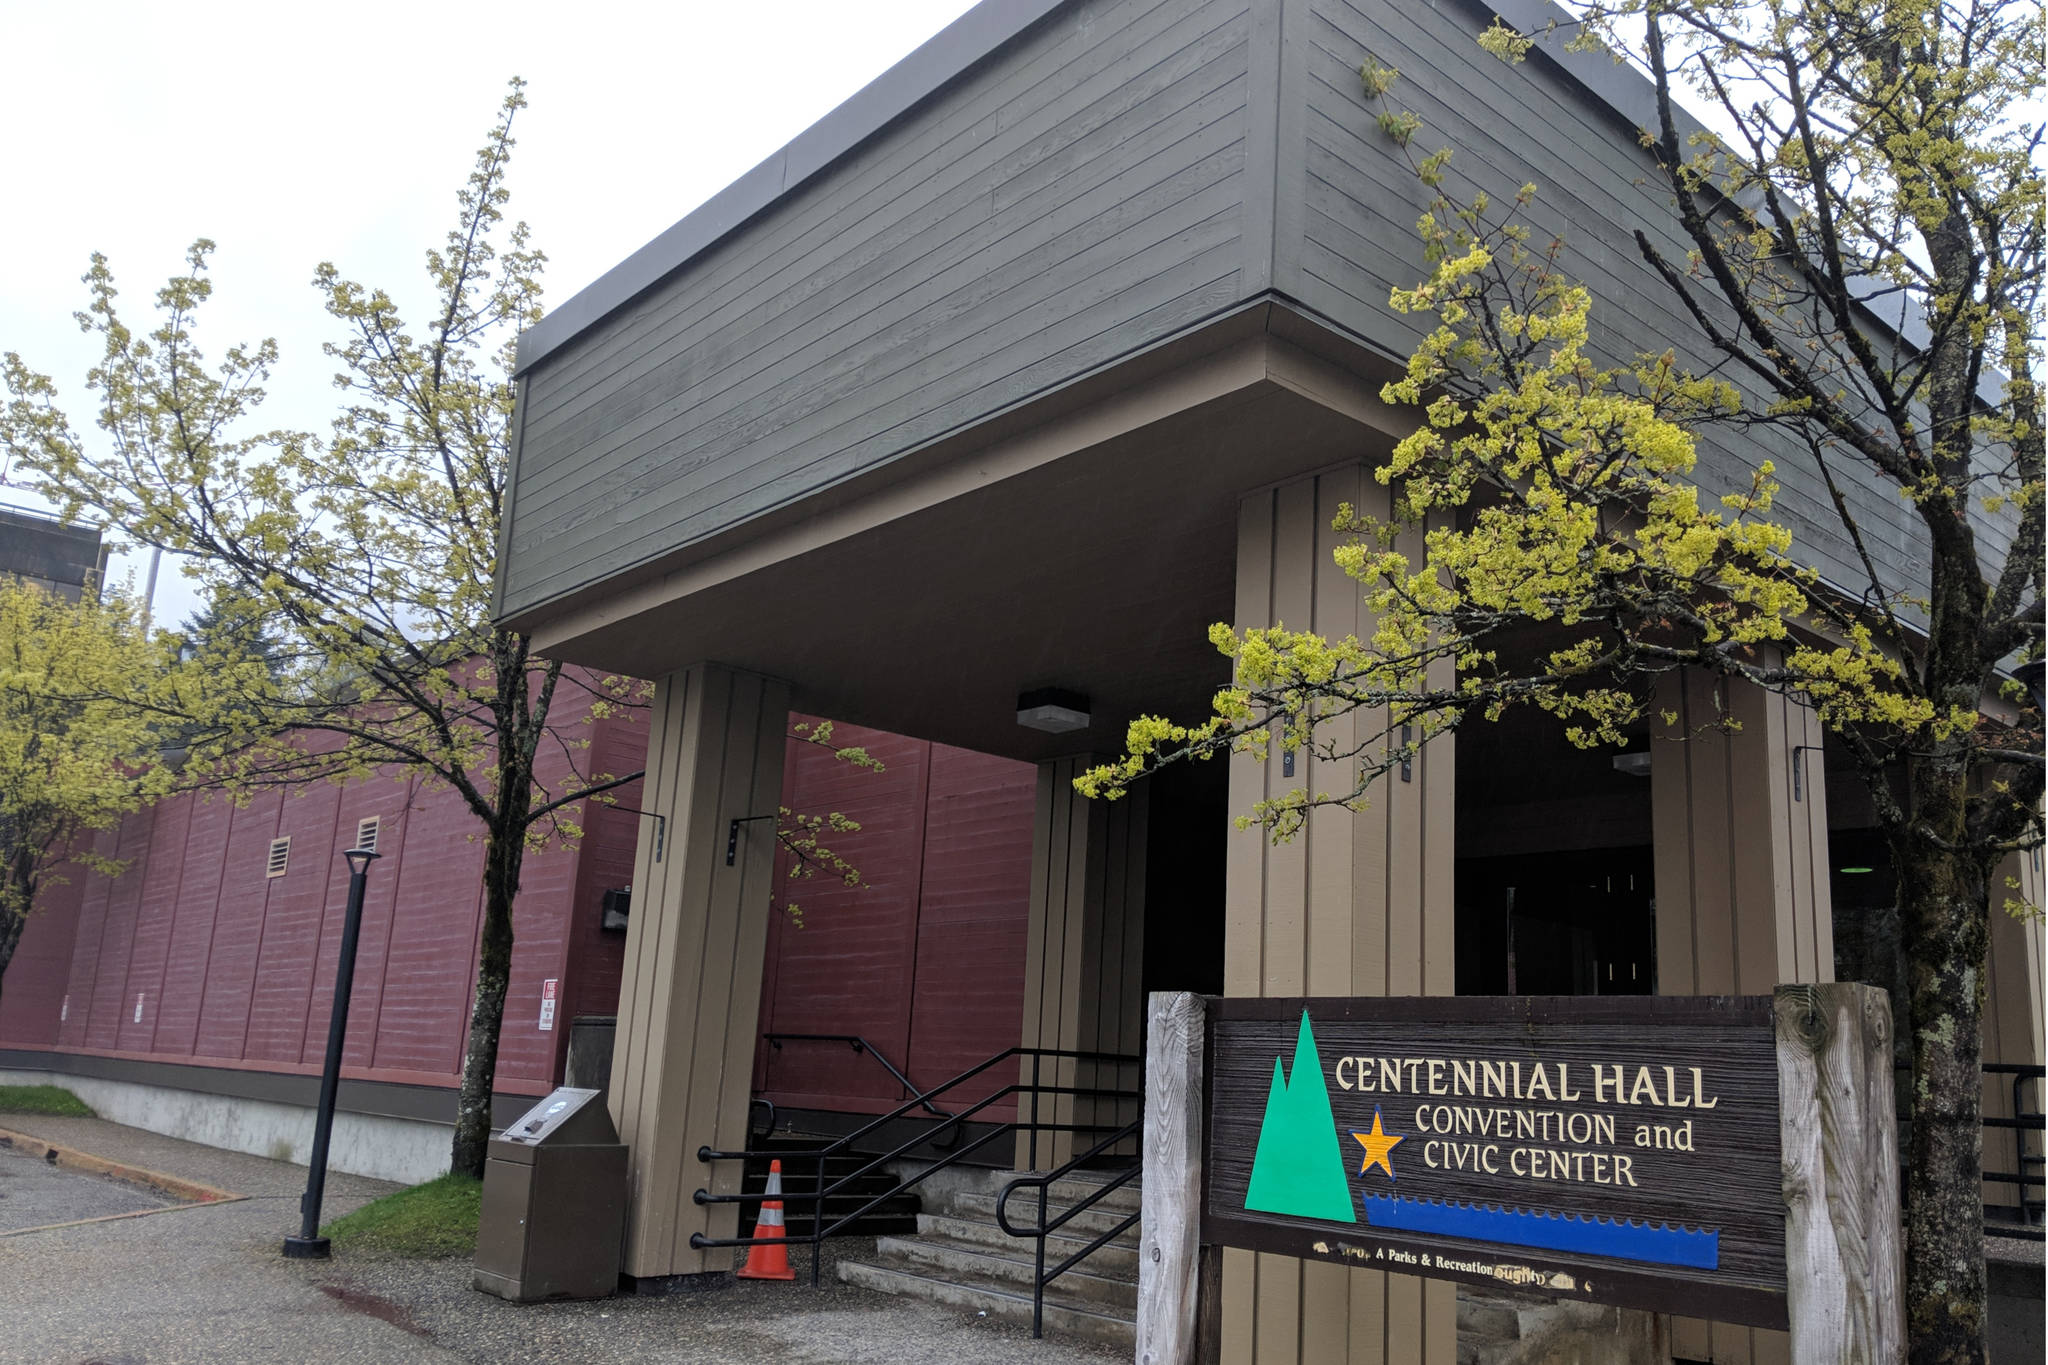 Centennial Hall's needs are one of the main points of tonight's meeting. (Ben Hohenstatt | Juneau Empire)